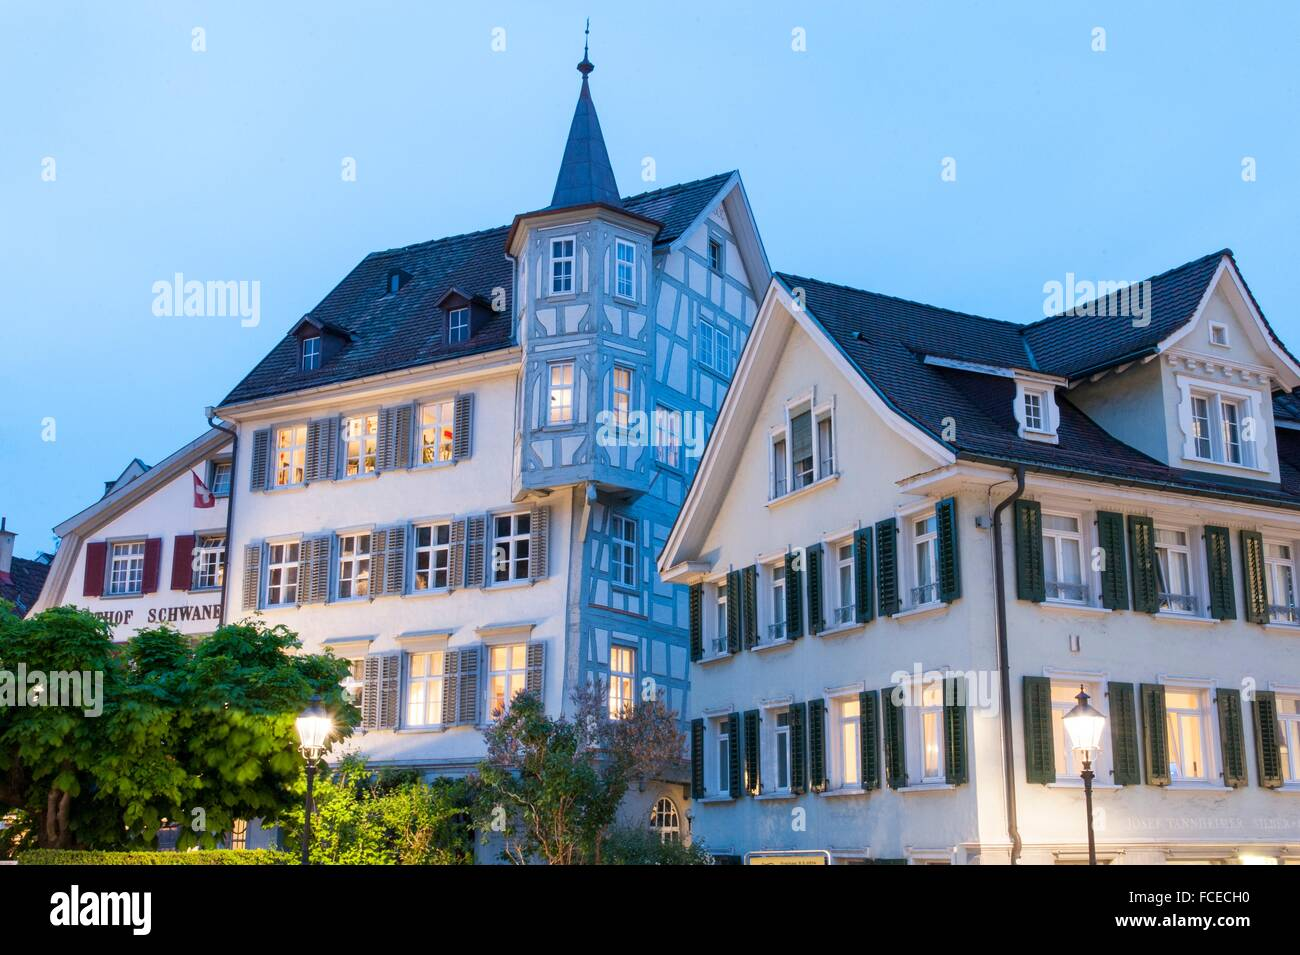 old town and Cathedral, Dusk, Old Town of St. Gallen, Canton of St. Gallen, Switzerland - Stock Image